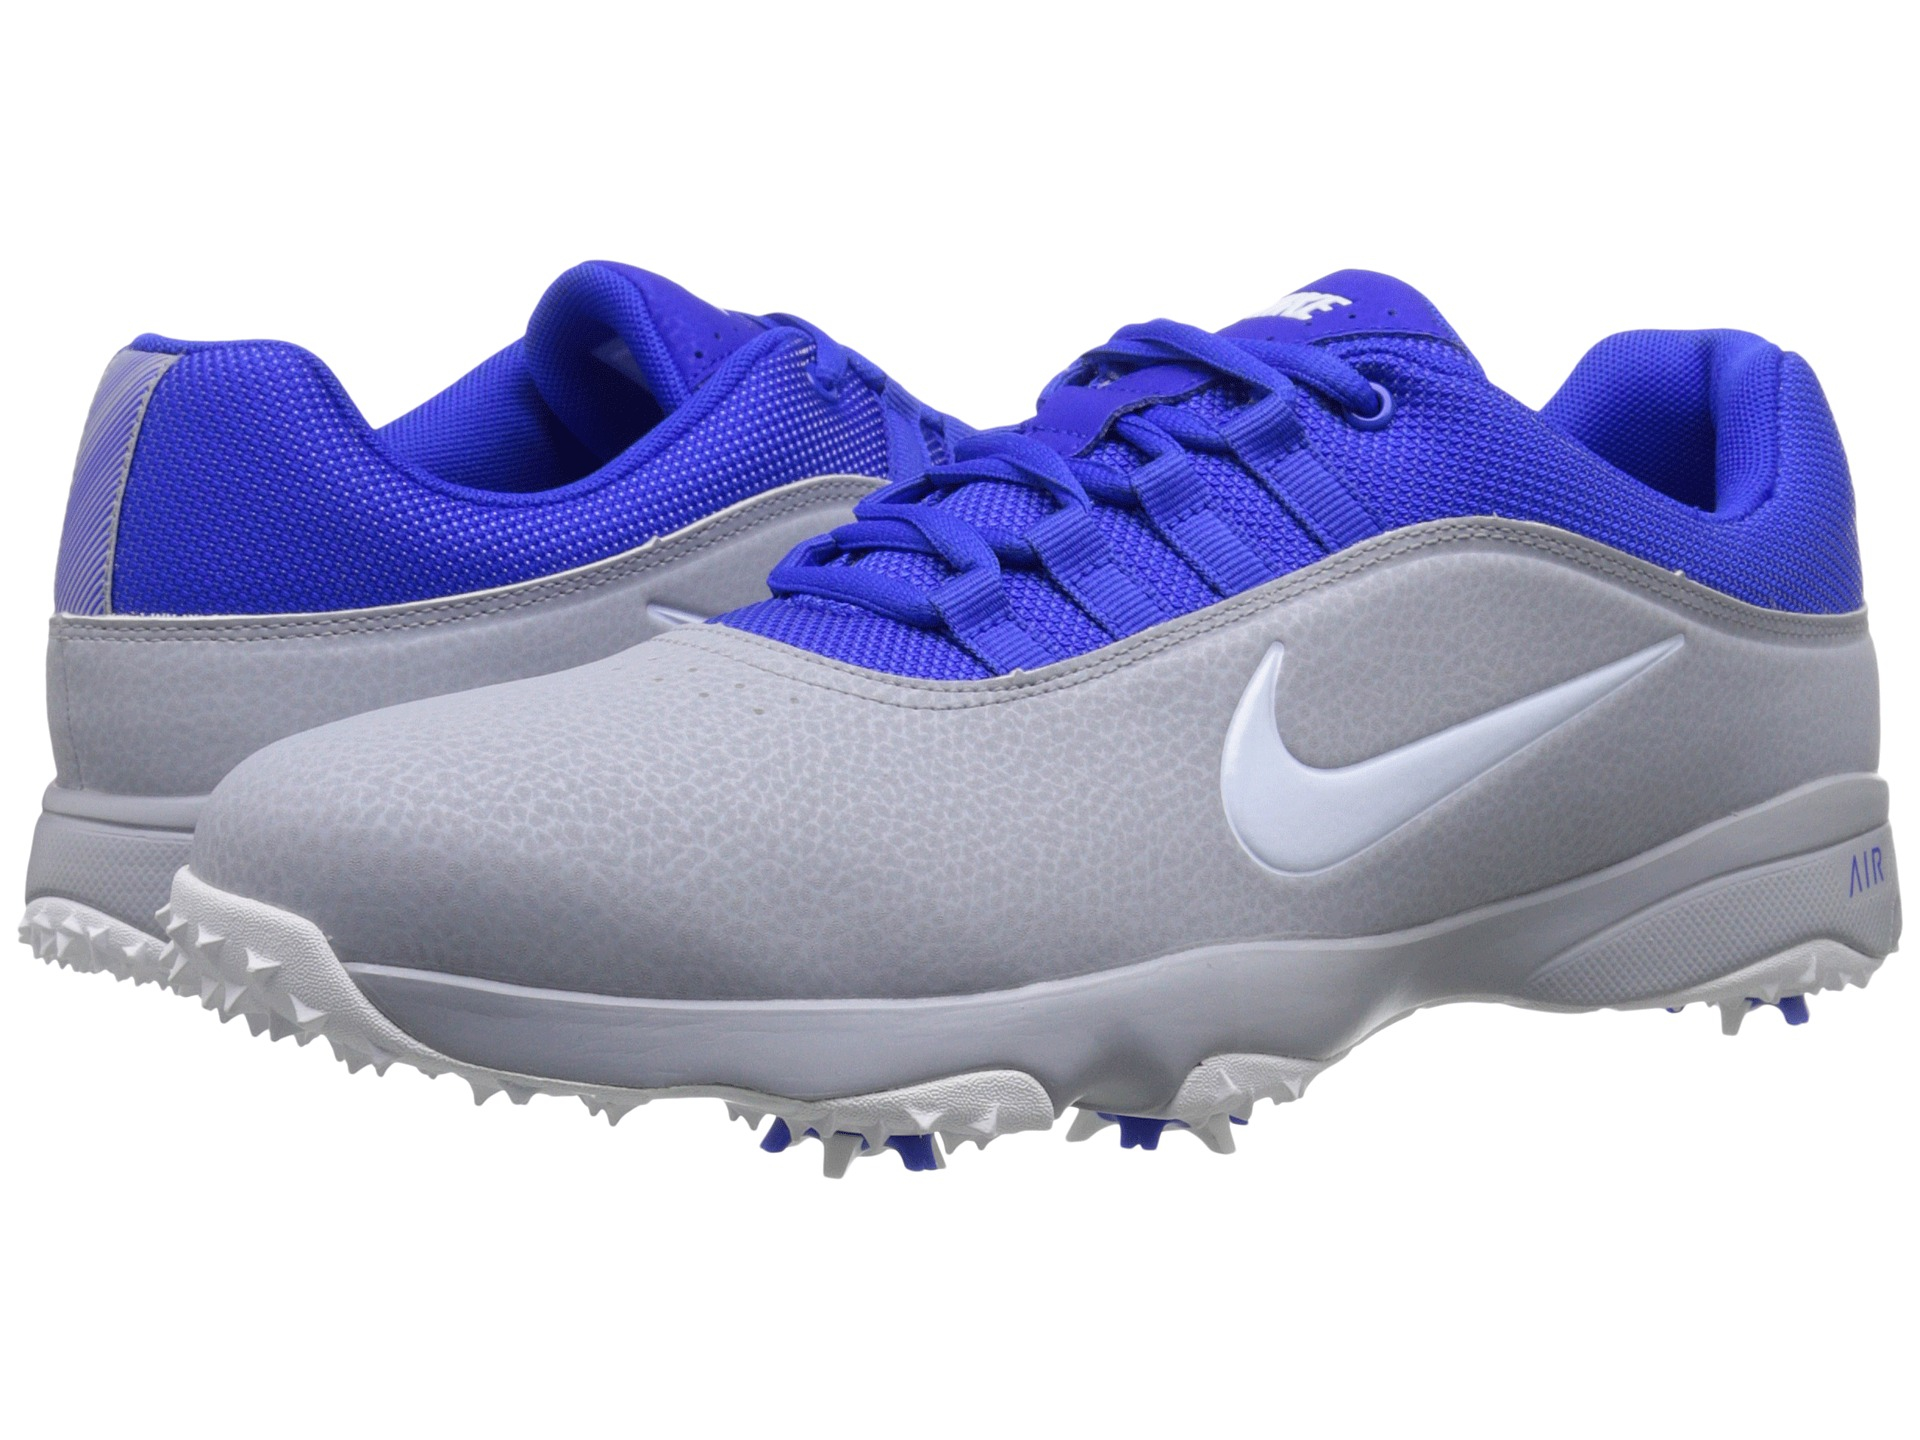 2016 Latest Design Mens Golf Shoes - Nike Air Rival 4 Wolf Grey/White/Racer Blue